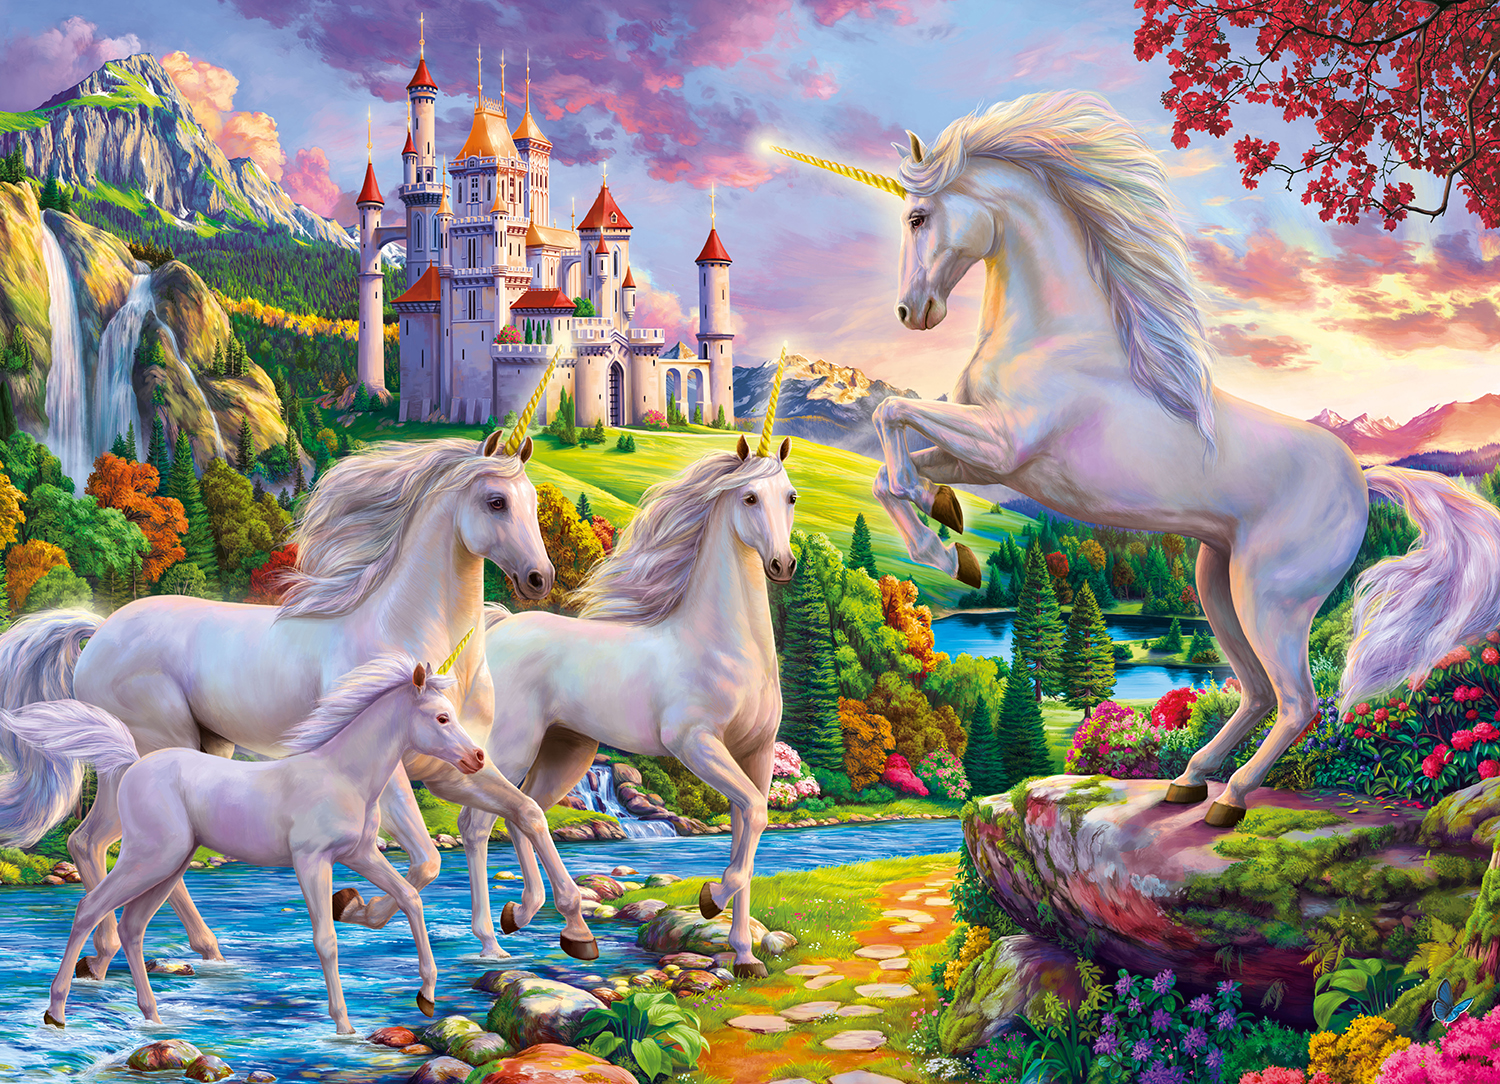 Unicorn Castle 1000-Piece Puzzle